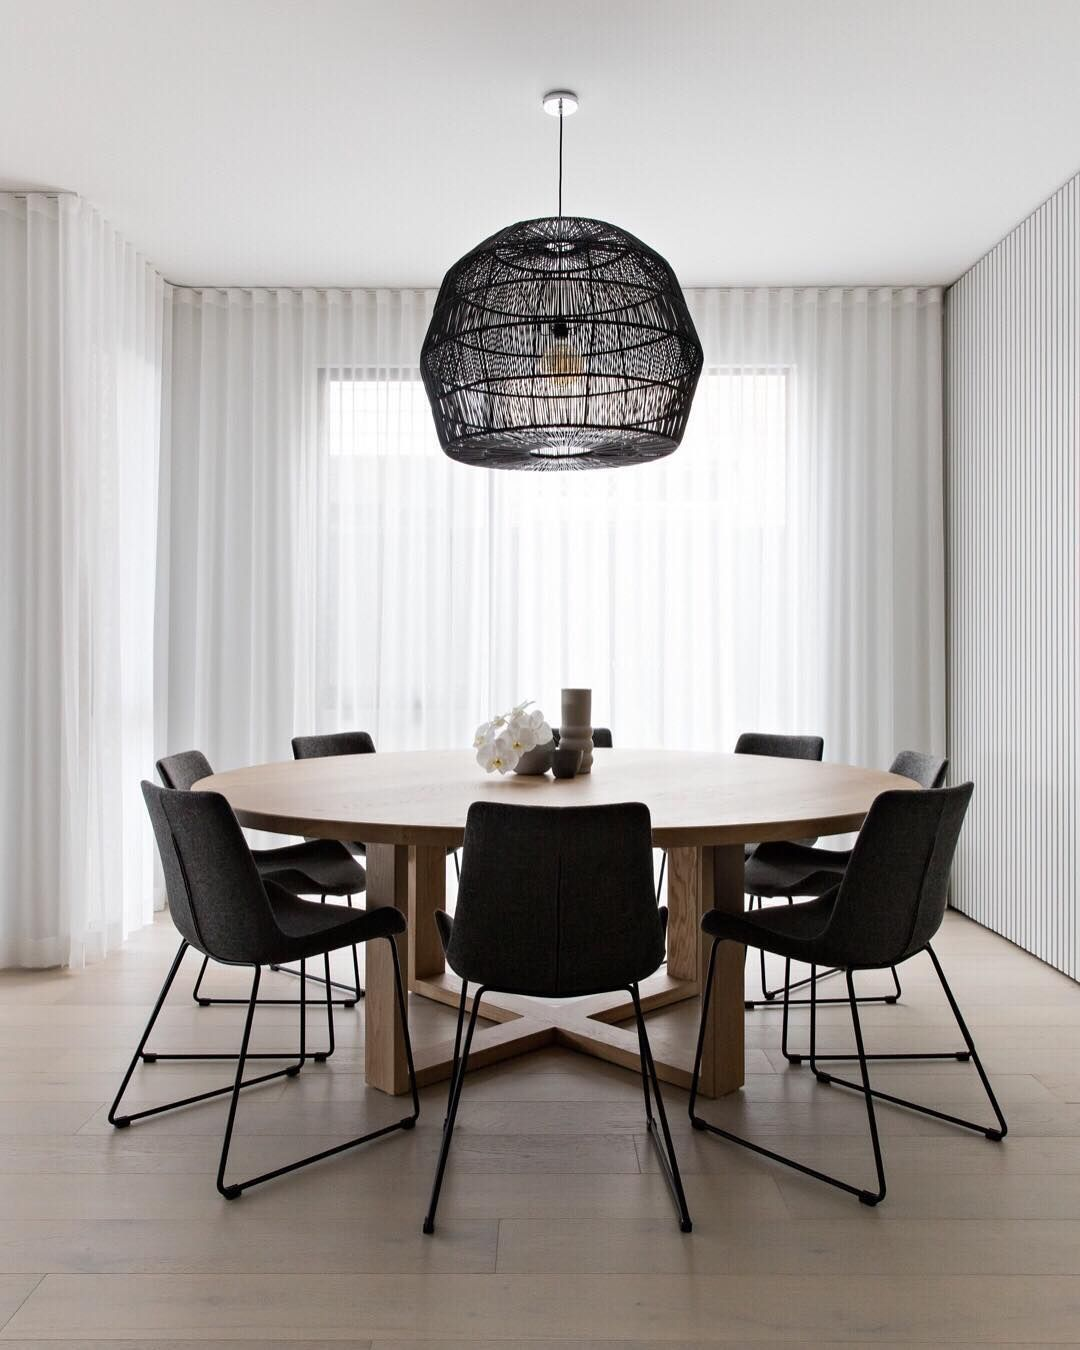 Design Styling Tips On Instagram If You Ask Us Round Tables And Square Dining Rooms Are A Mat Scandi Dining Room Round Dining Room Table Round Dining Room